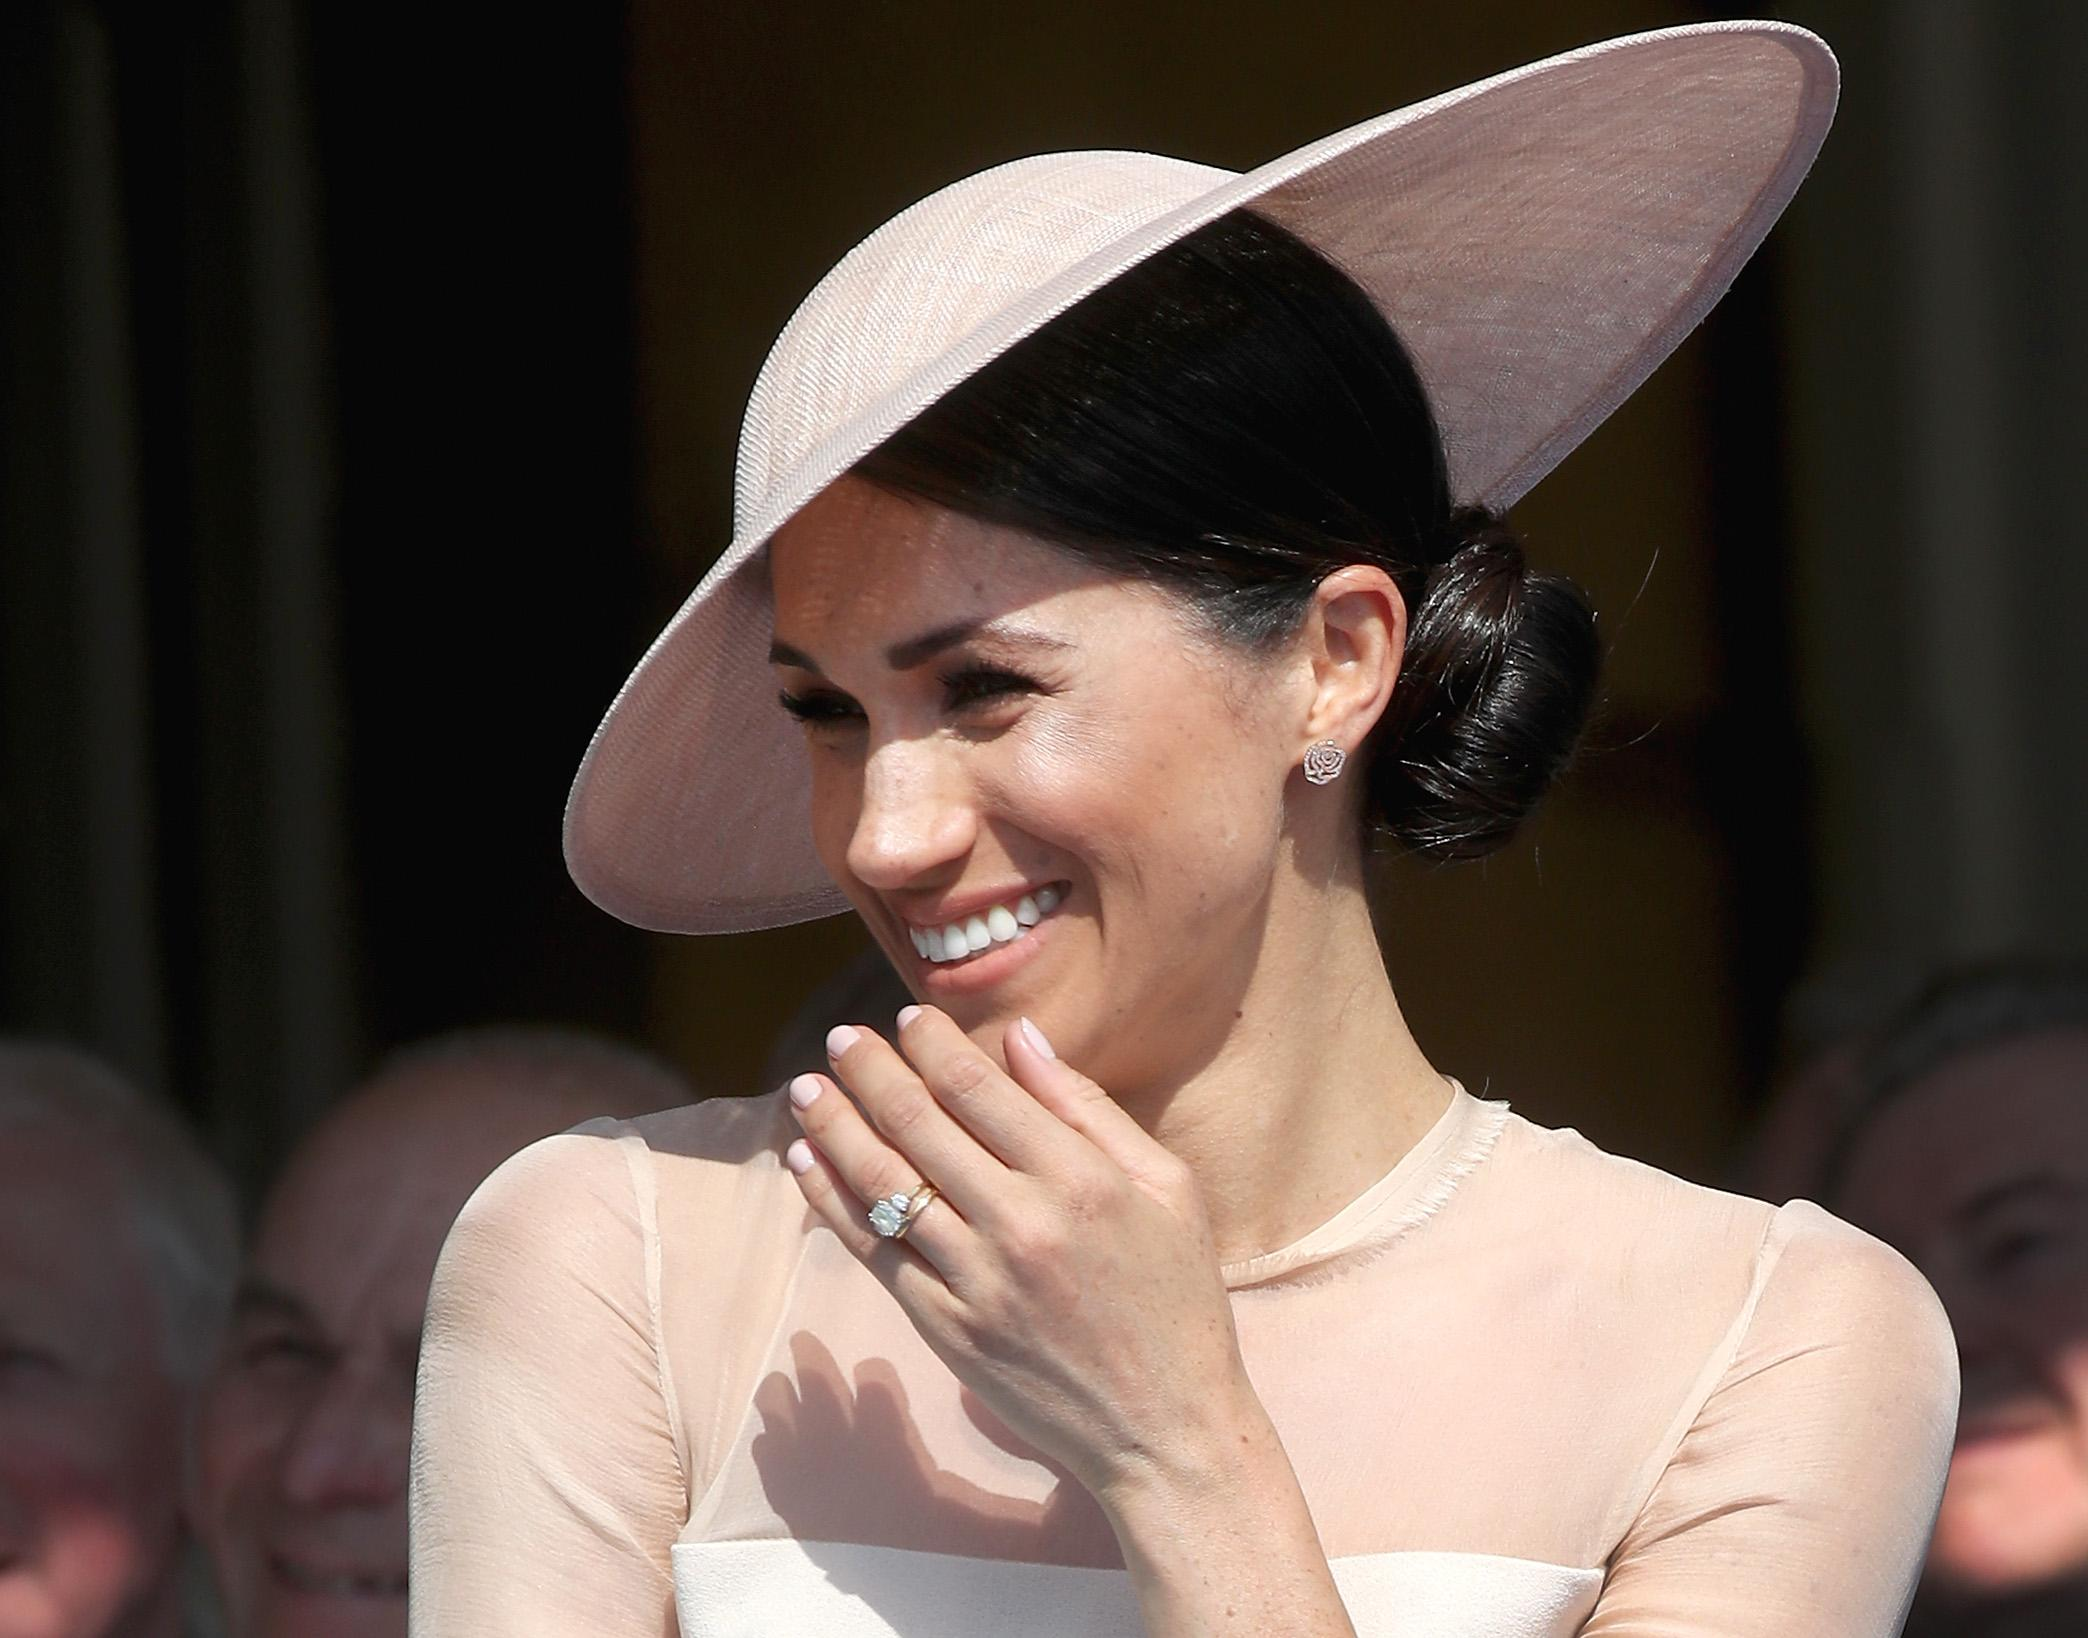 Meghan Markle caused Goat Fashion's website to crash when she wore a dress from the brand yesterday. [Photo: Getty]